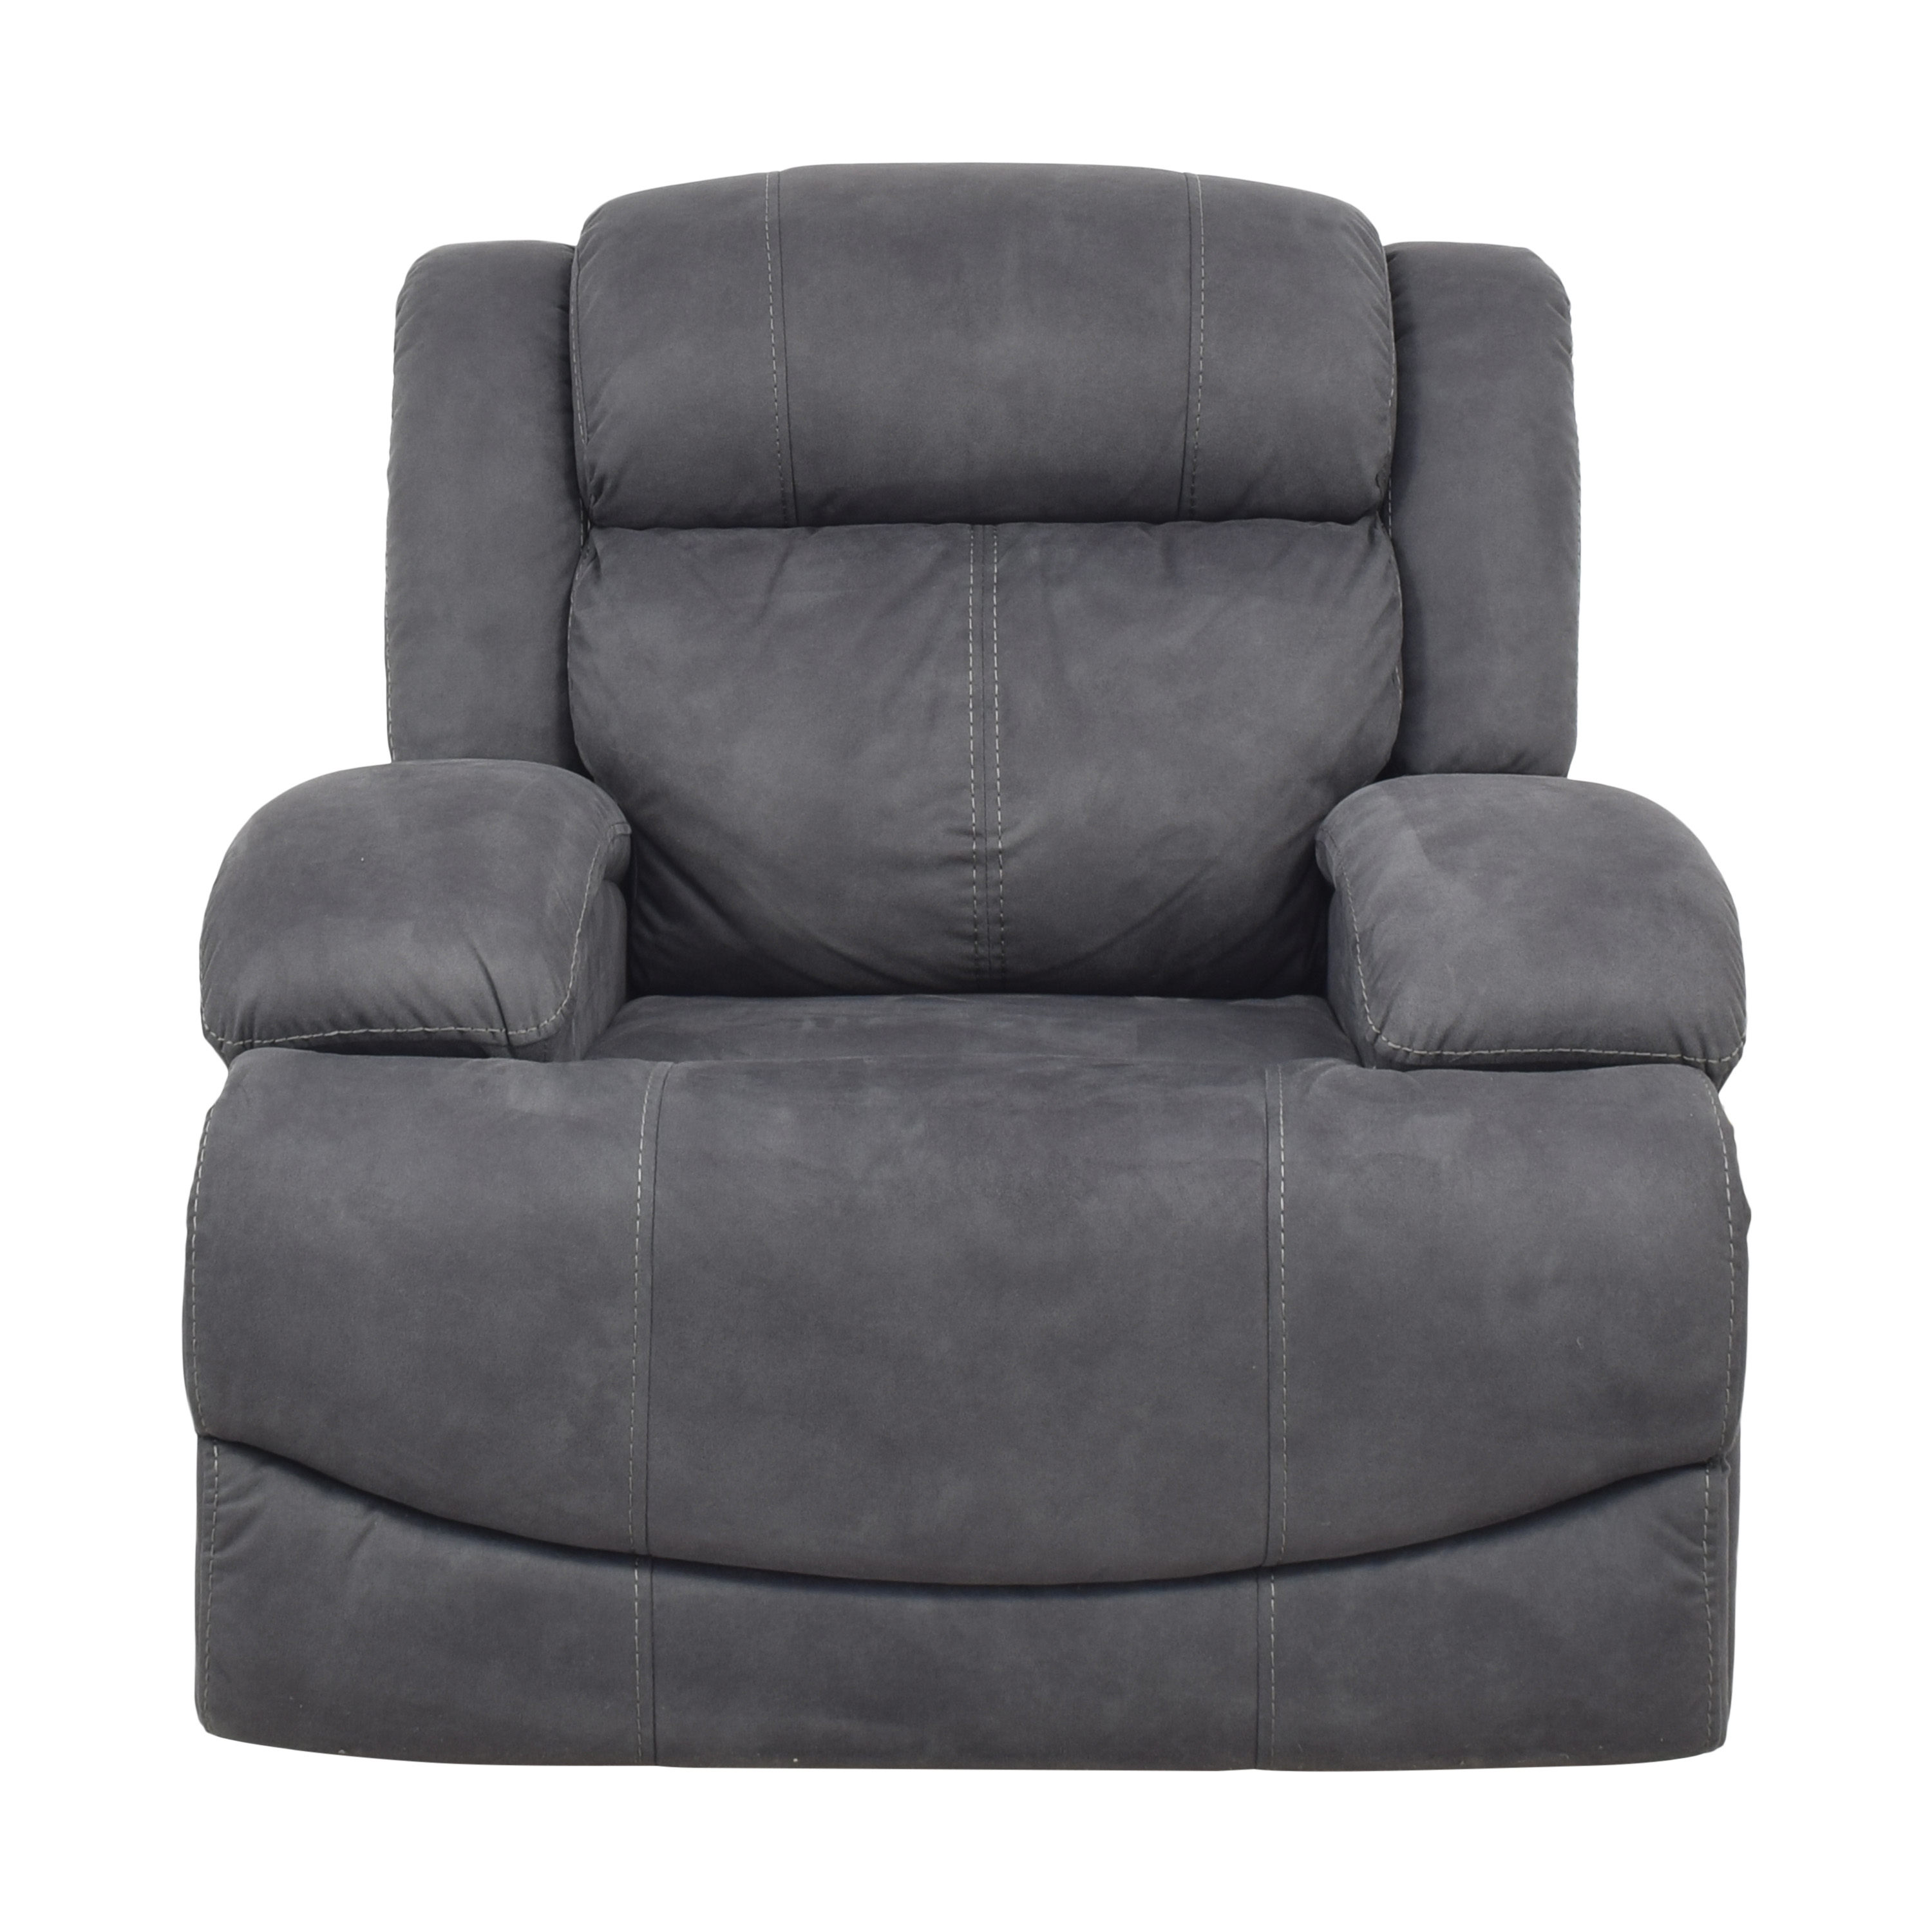 shop Raymour & Flanigan Raymour & Flanigan Quincey Glider Power Recliner online